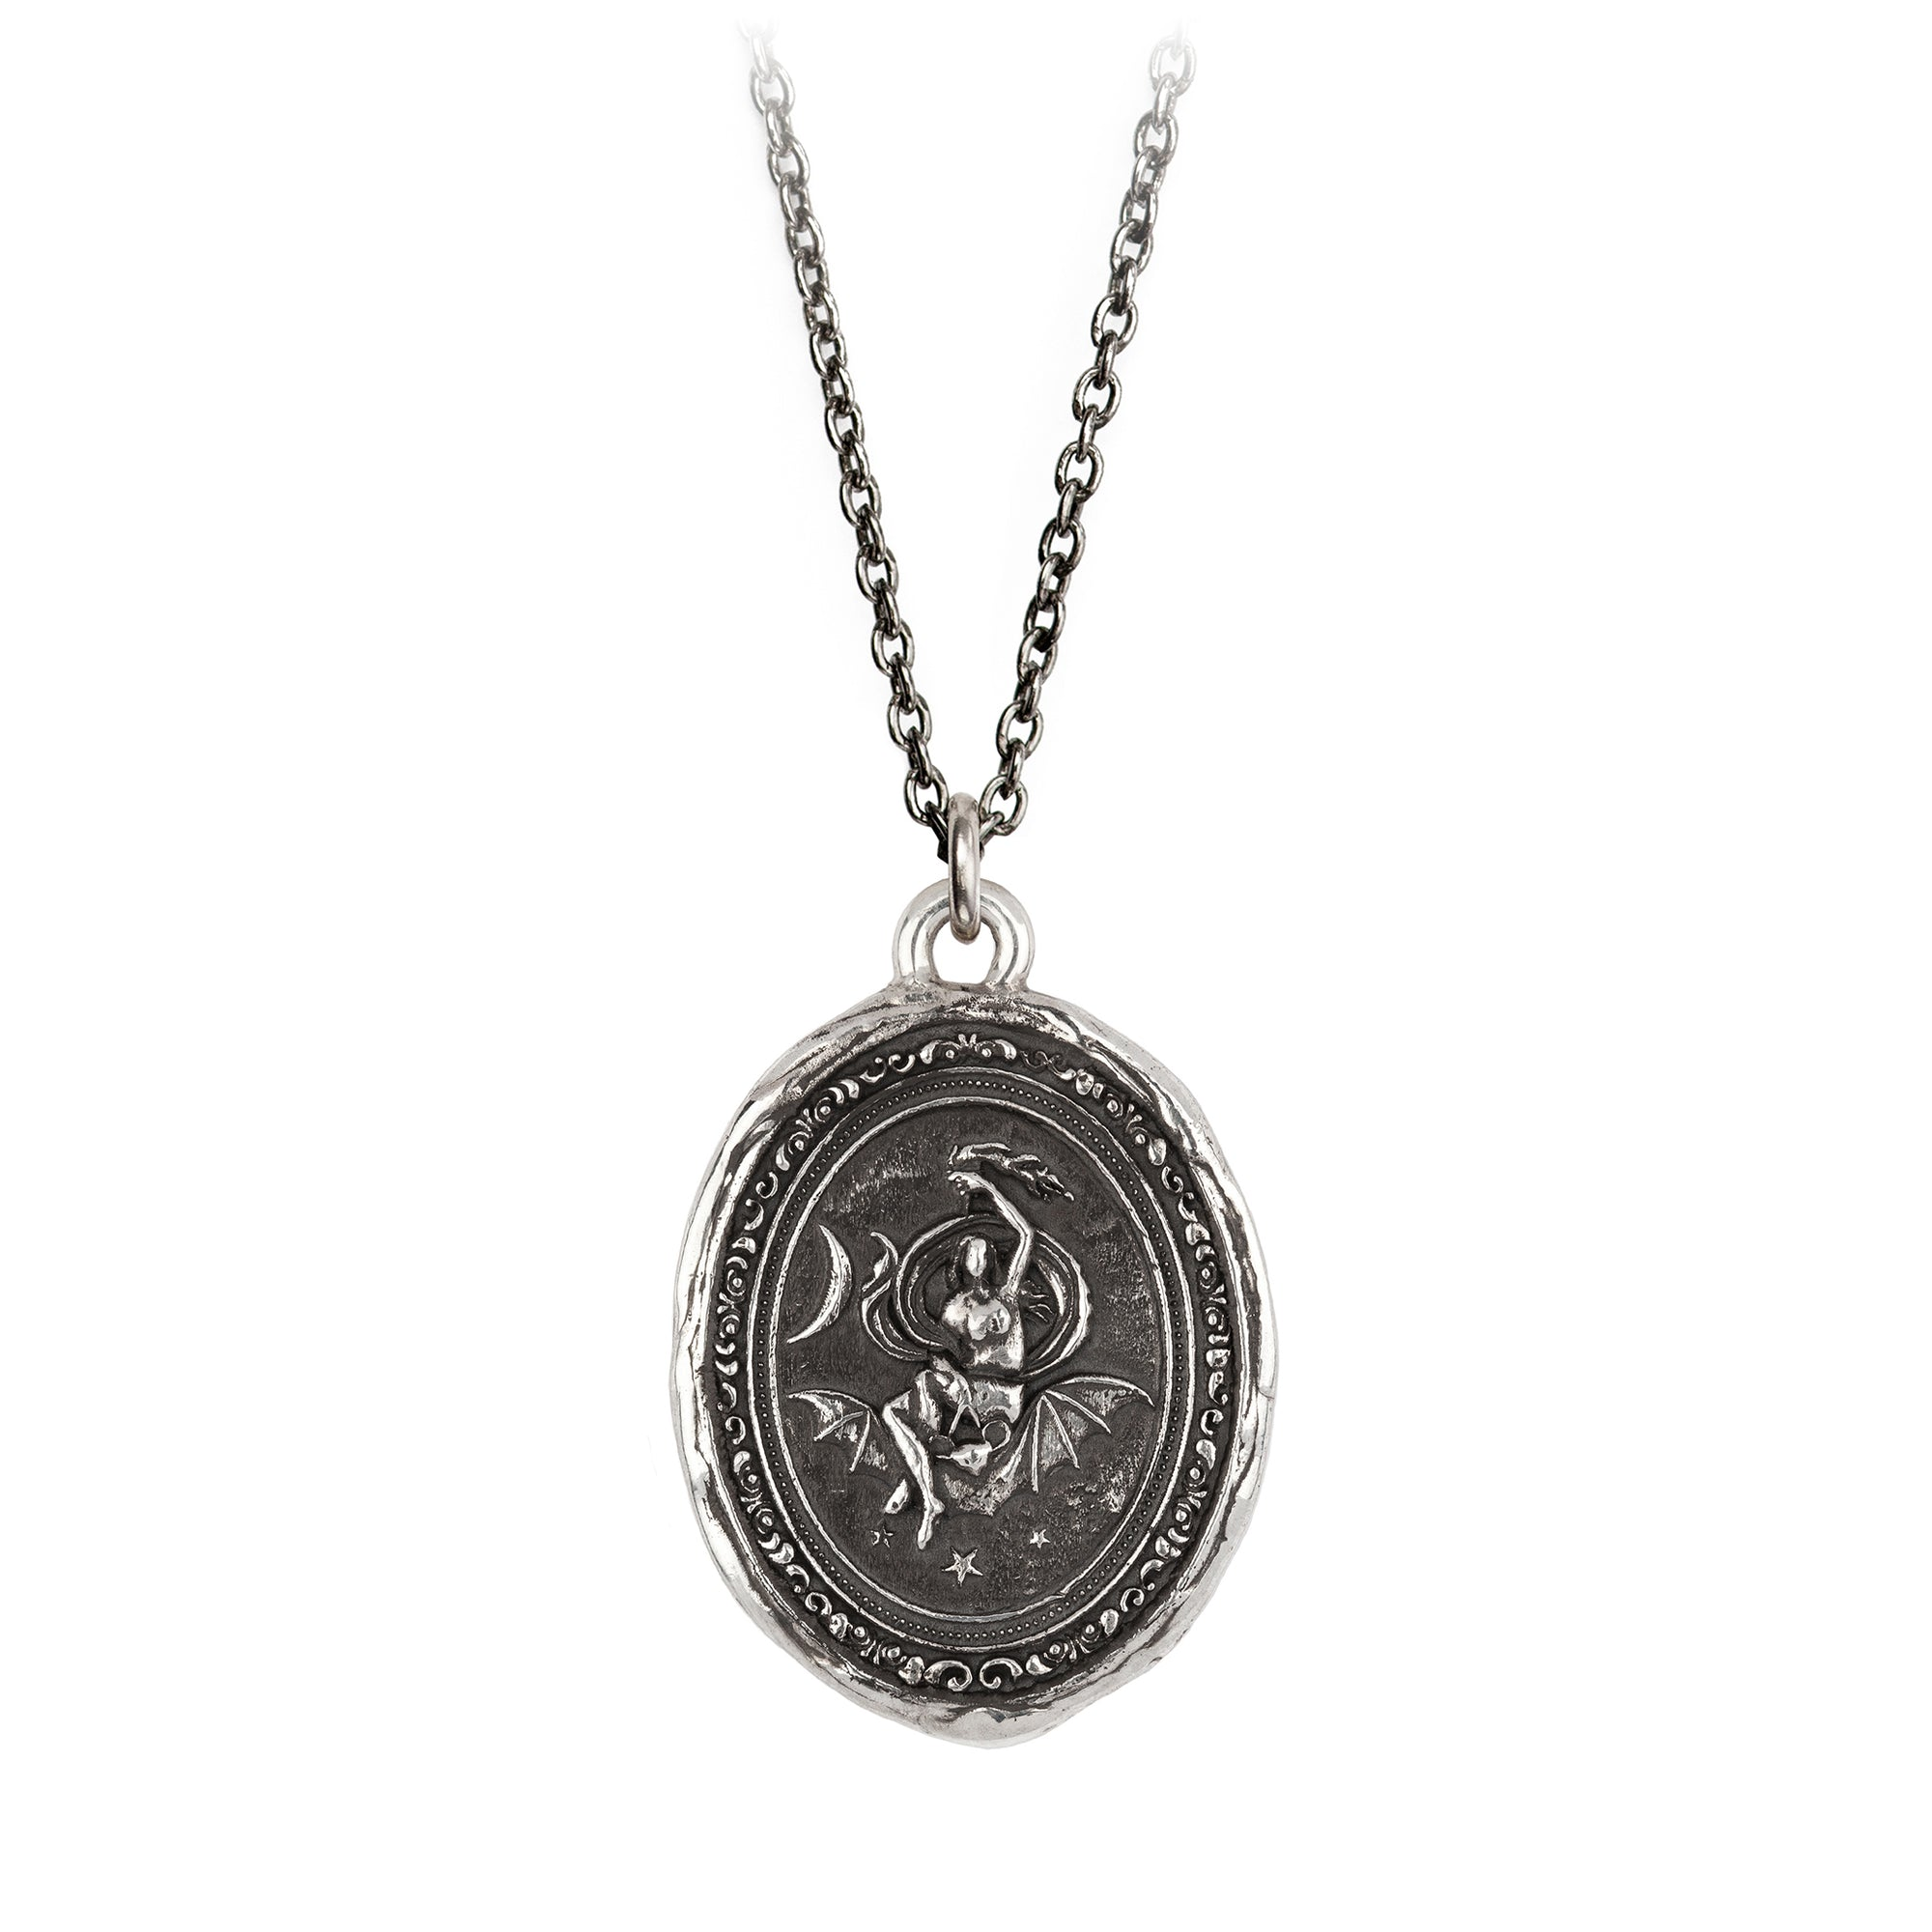 Pyrrha Nyx Goddess Talisman Necklace Silver